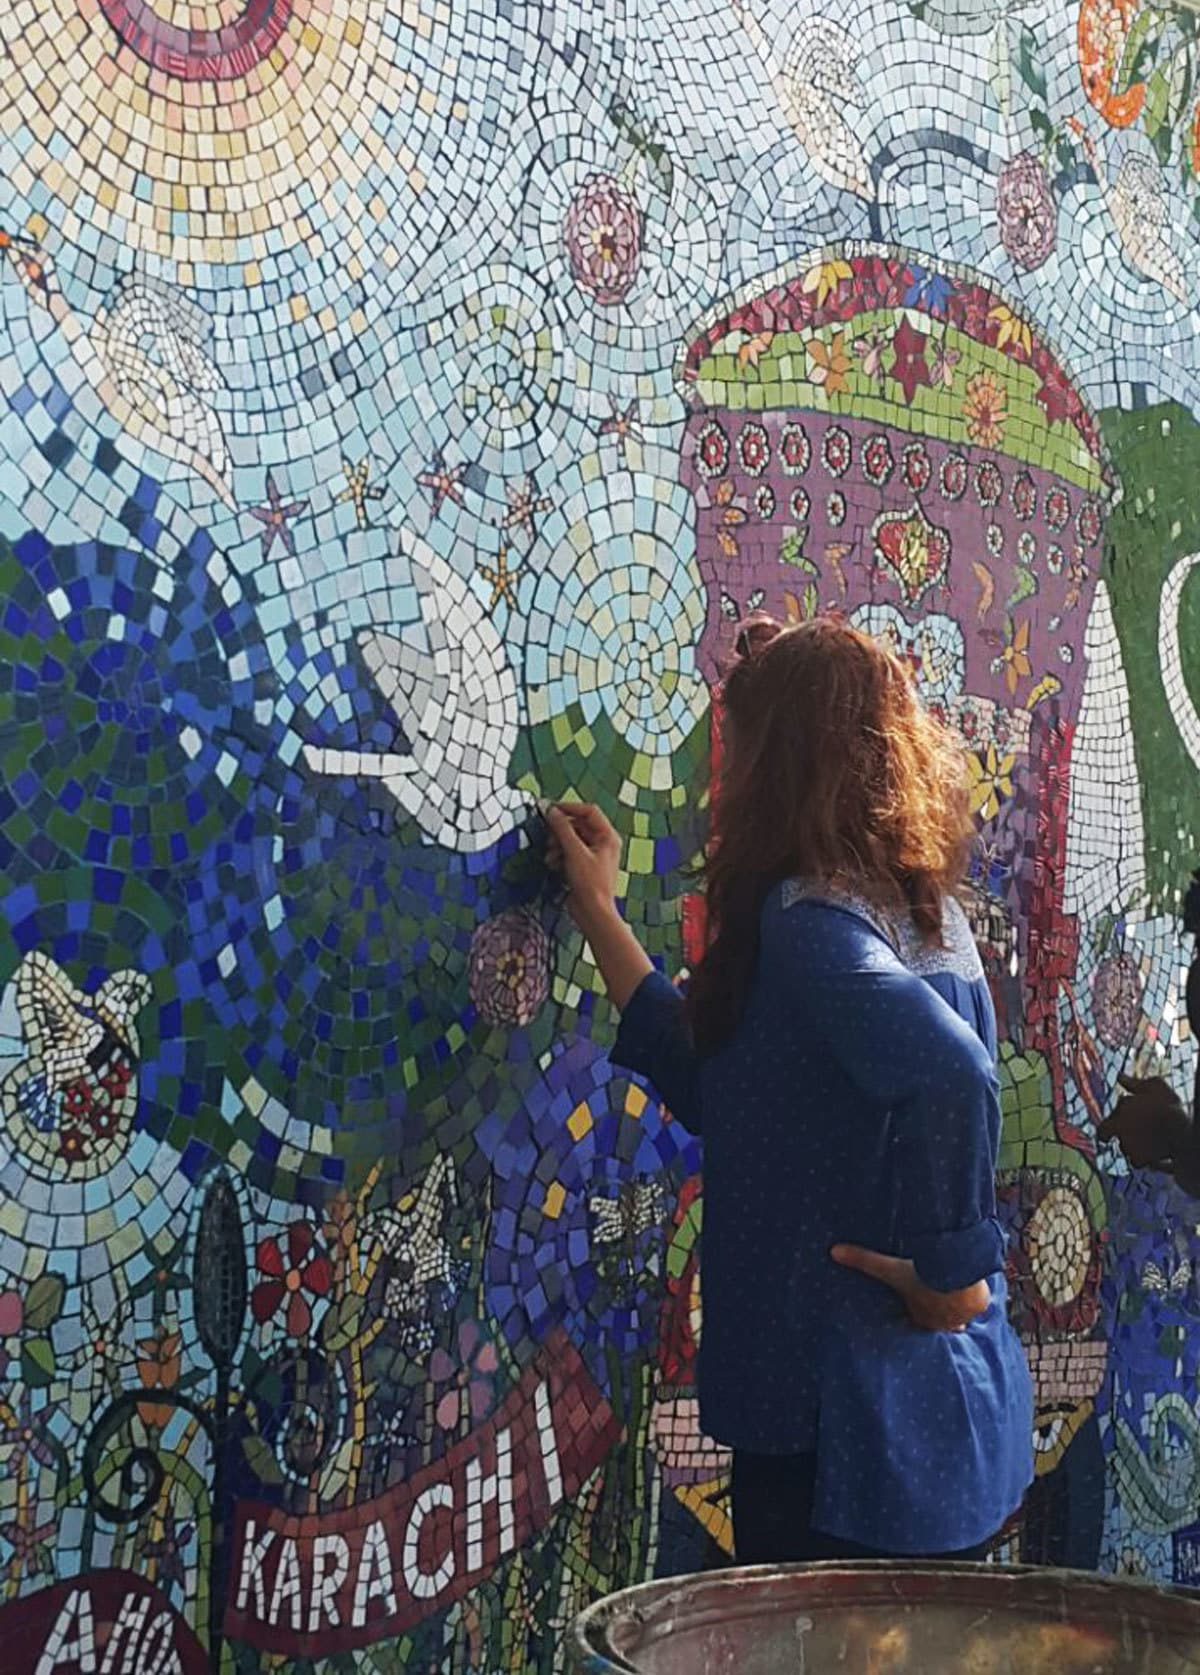 Revival Of A Fading Handloom Tradition The Khun: Muna Siddiqui's Beautiful Mosaic In Karachi Is A Call To Recover A Fading Tradition